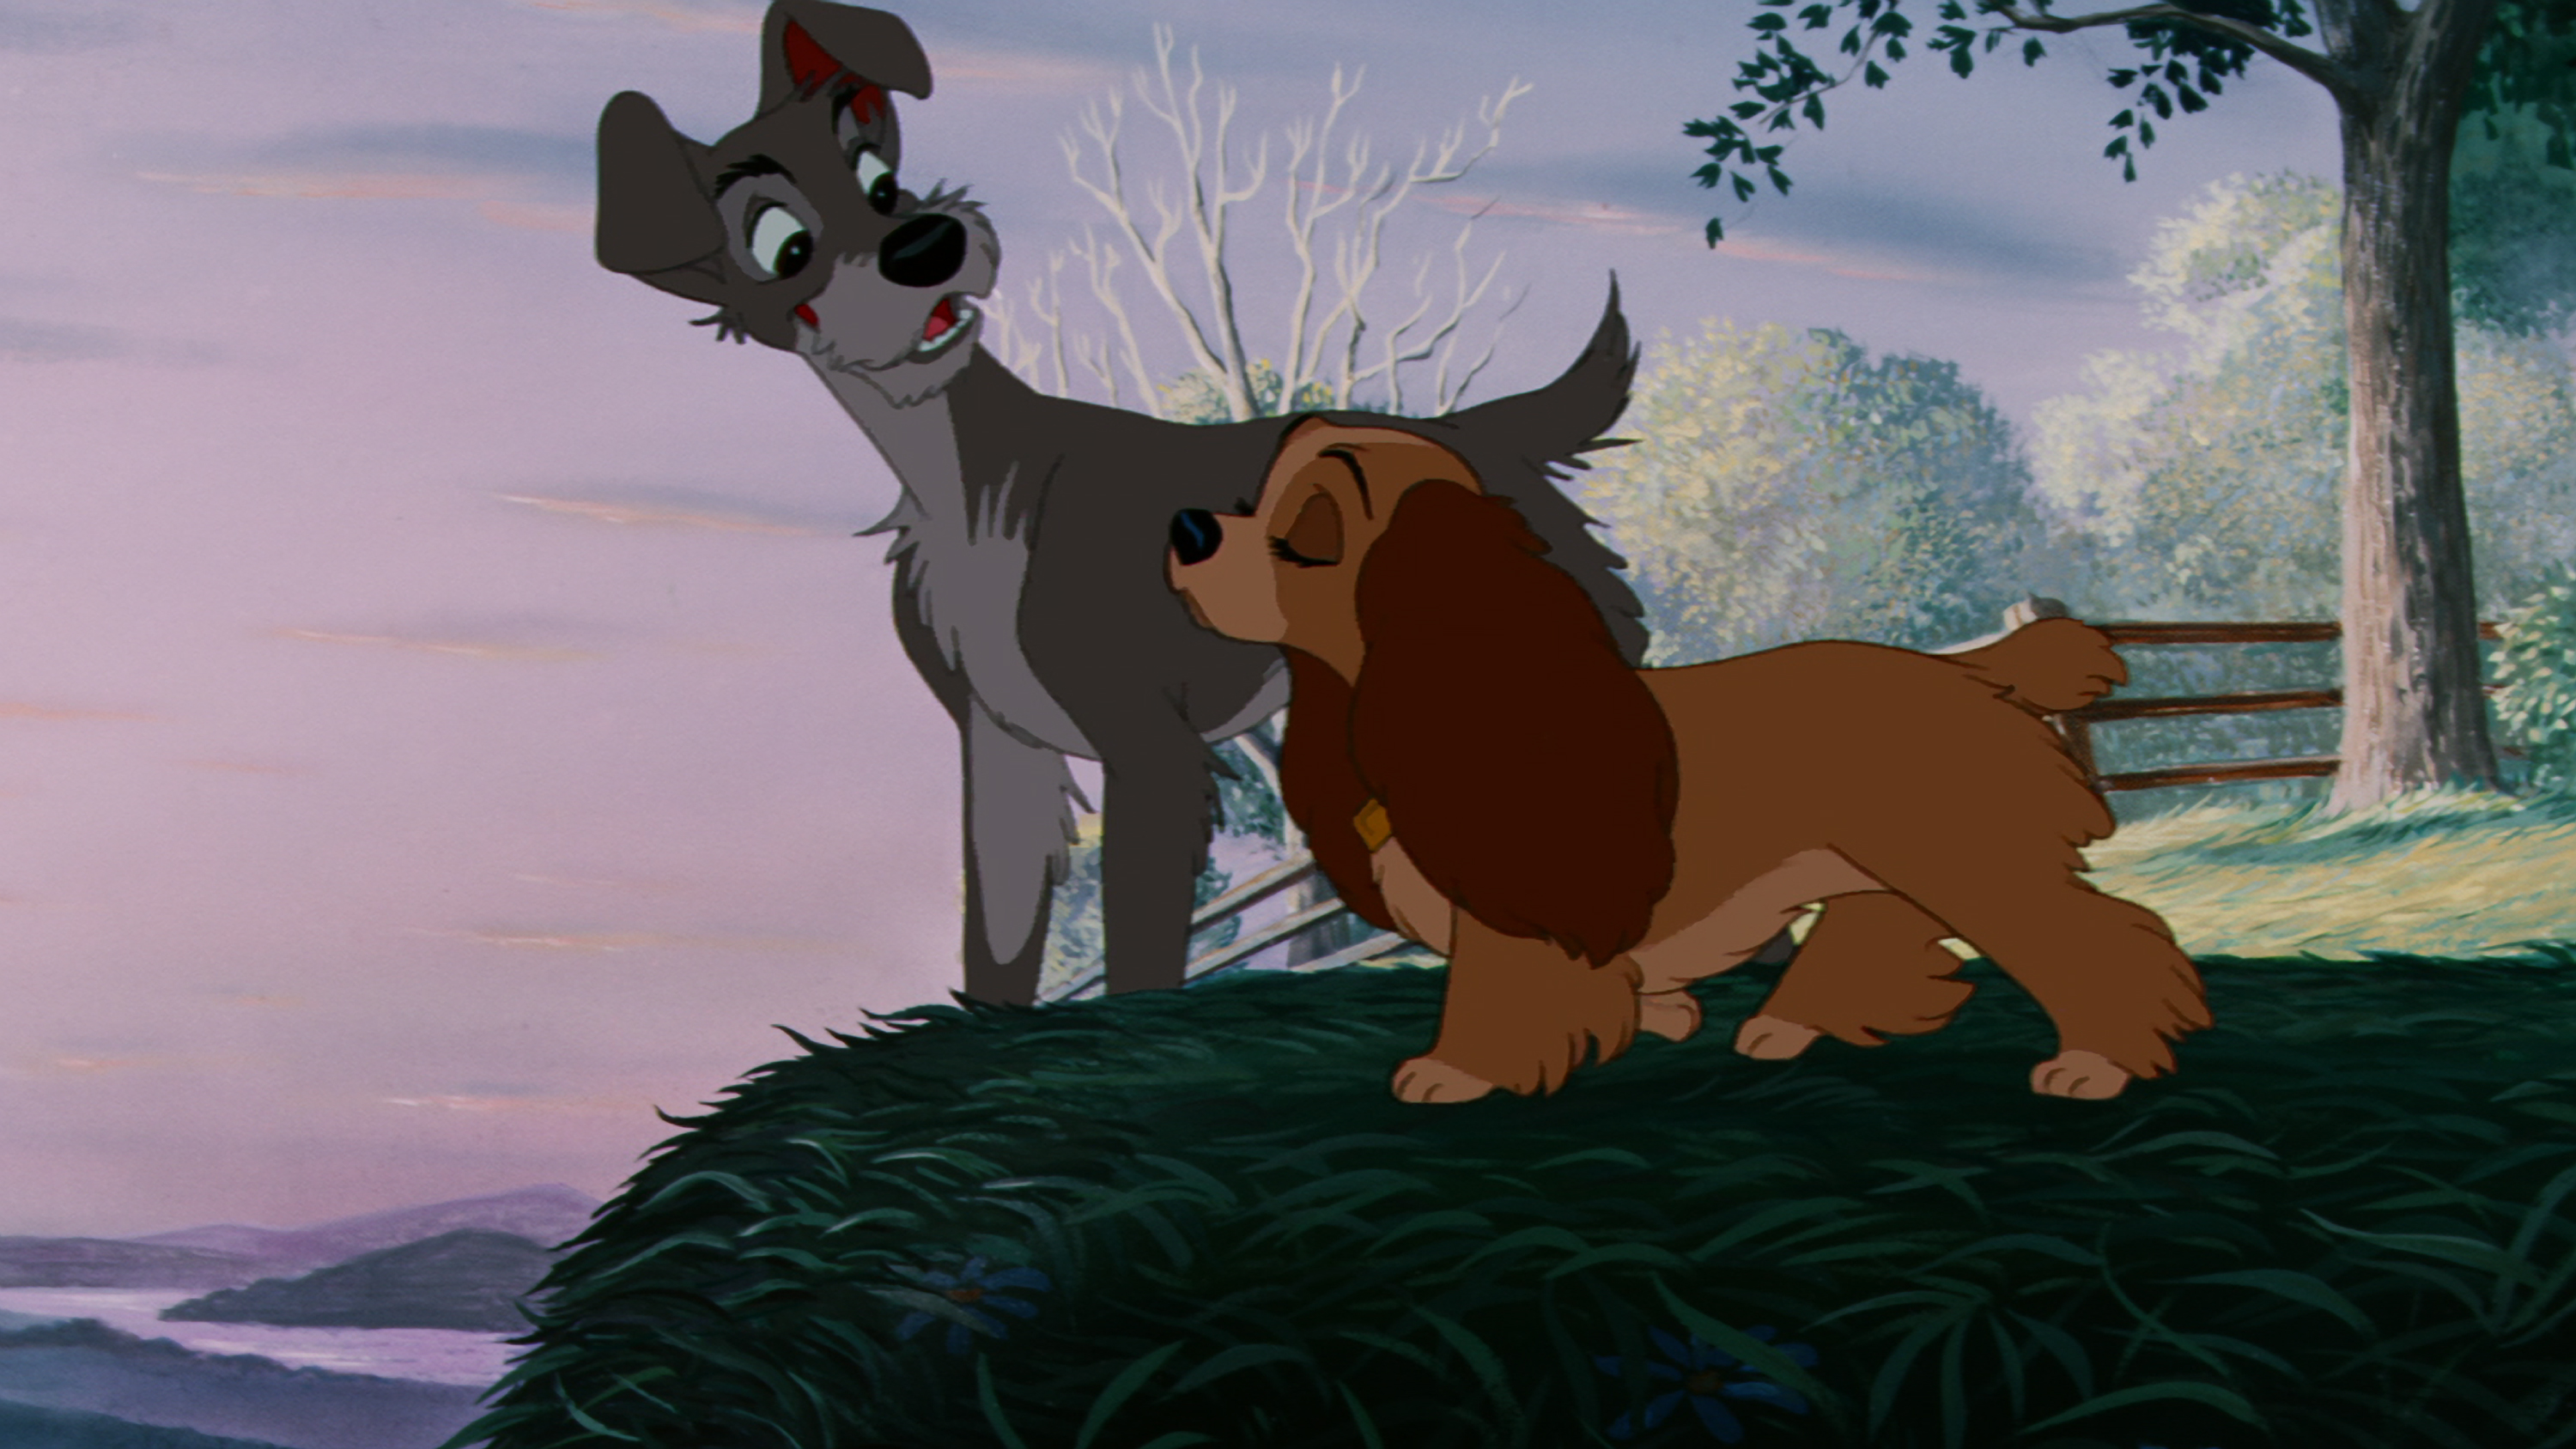 Disney's Lady And The Tramp remake just got a whole lot cuter as it's set to star real dogs